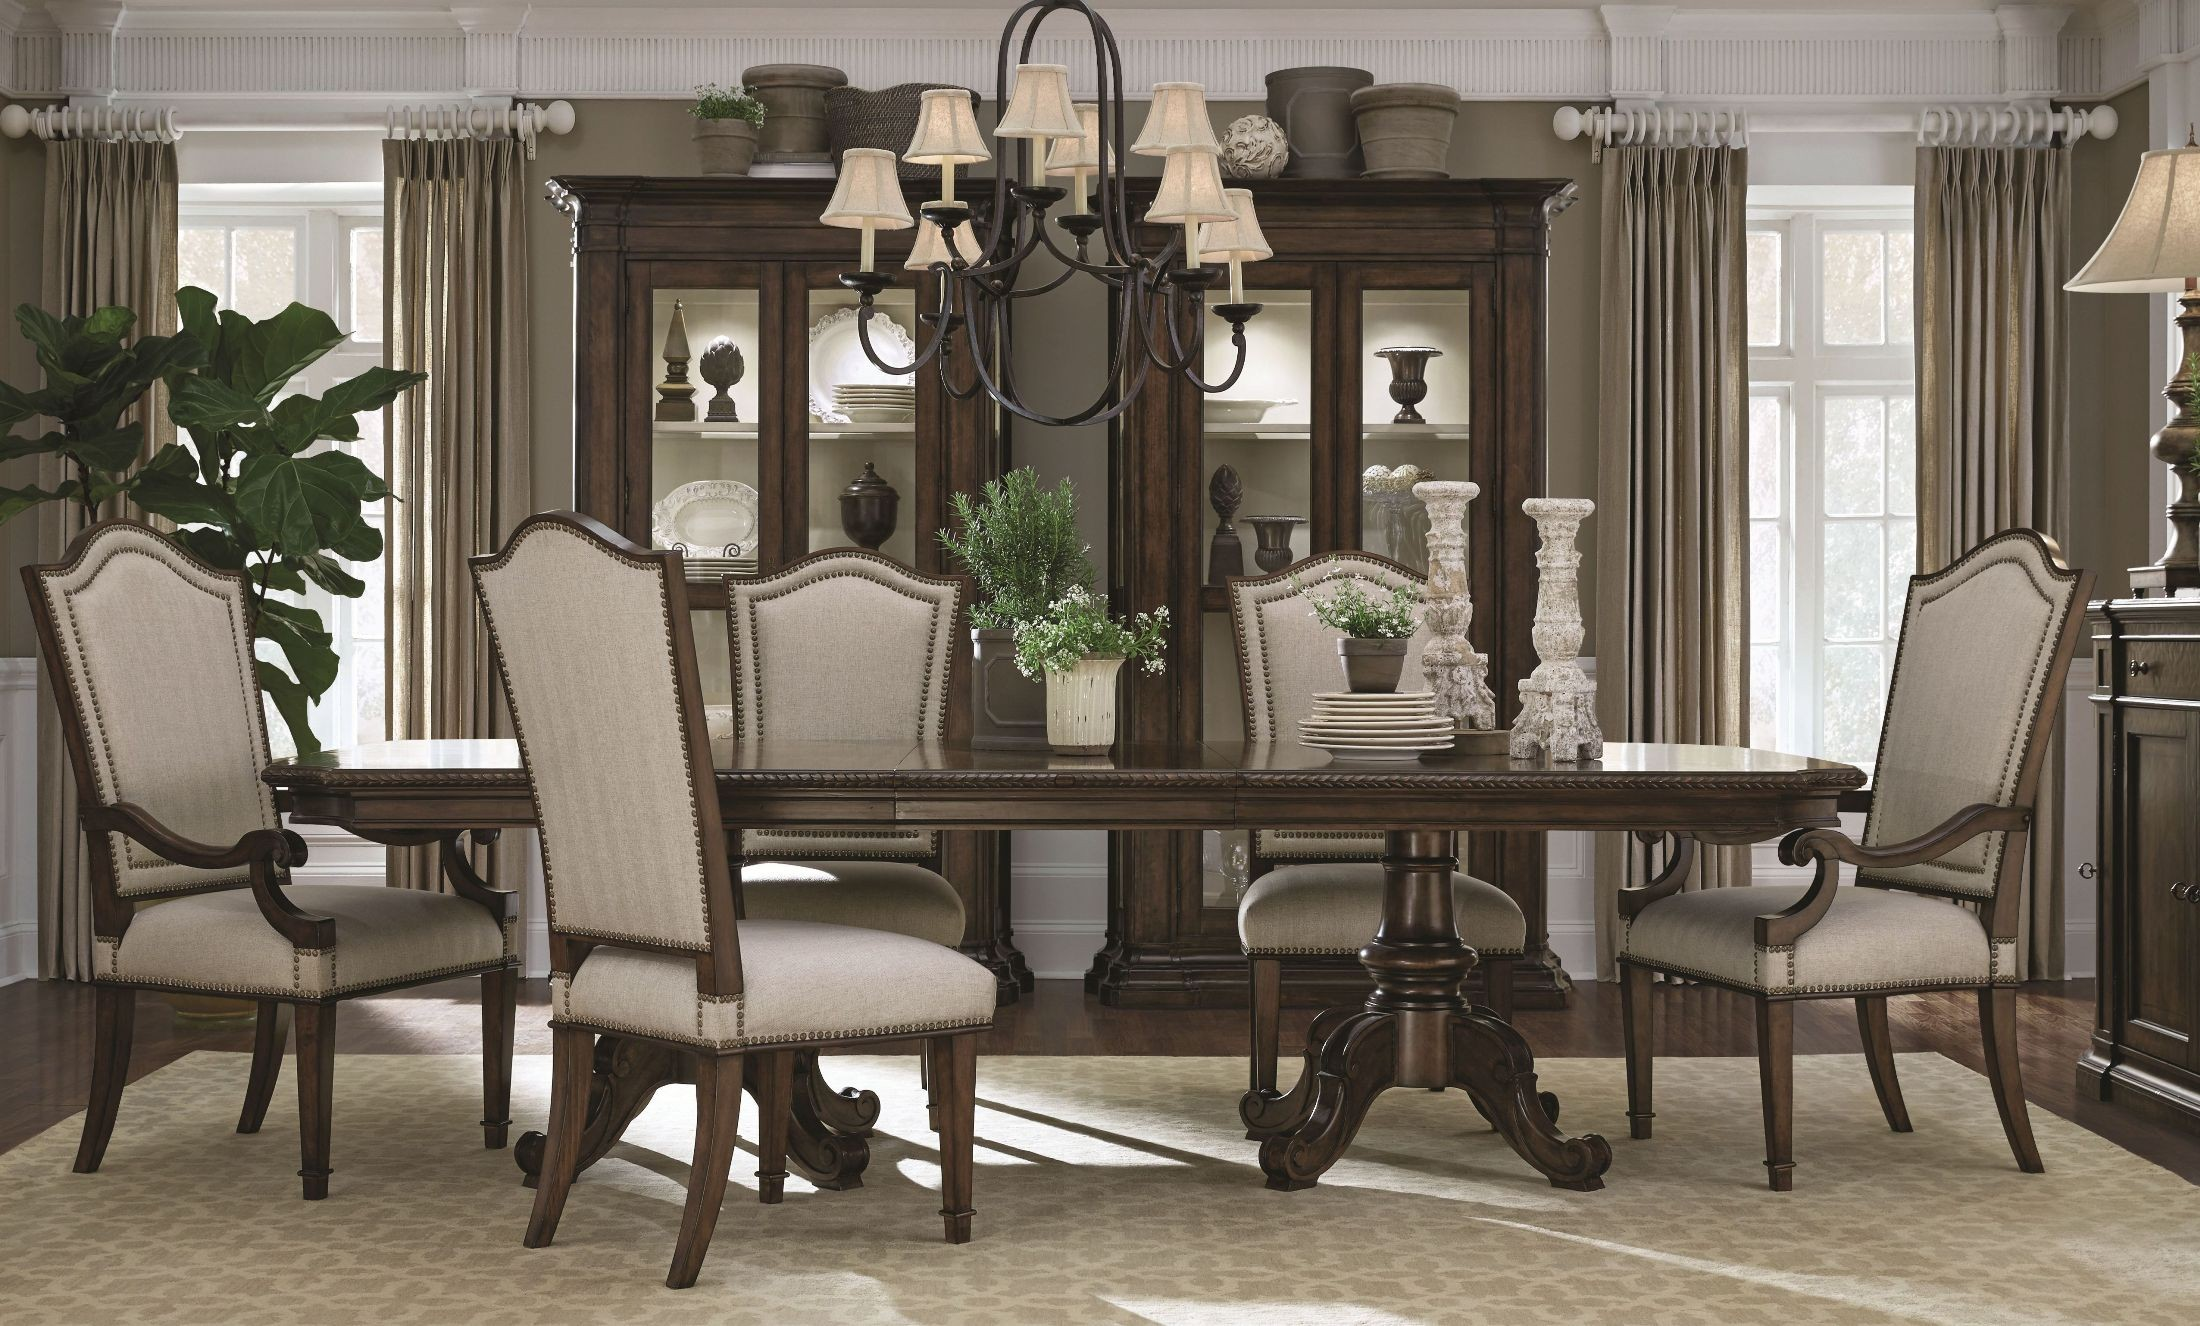 Chateaux Walnut Double Pedestal Extendable Dining Room Set From ART 213221 1